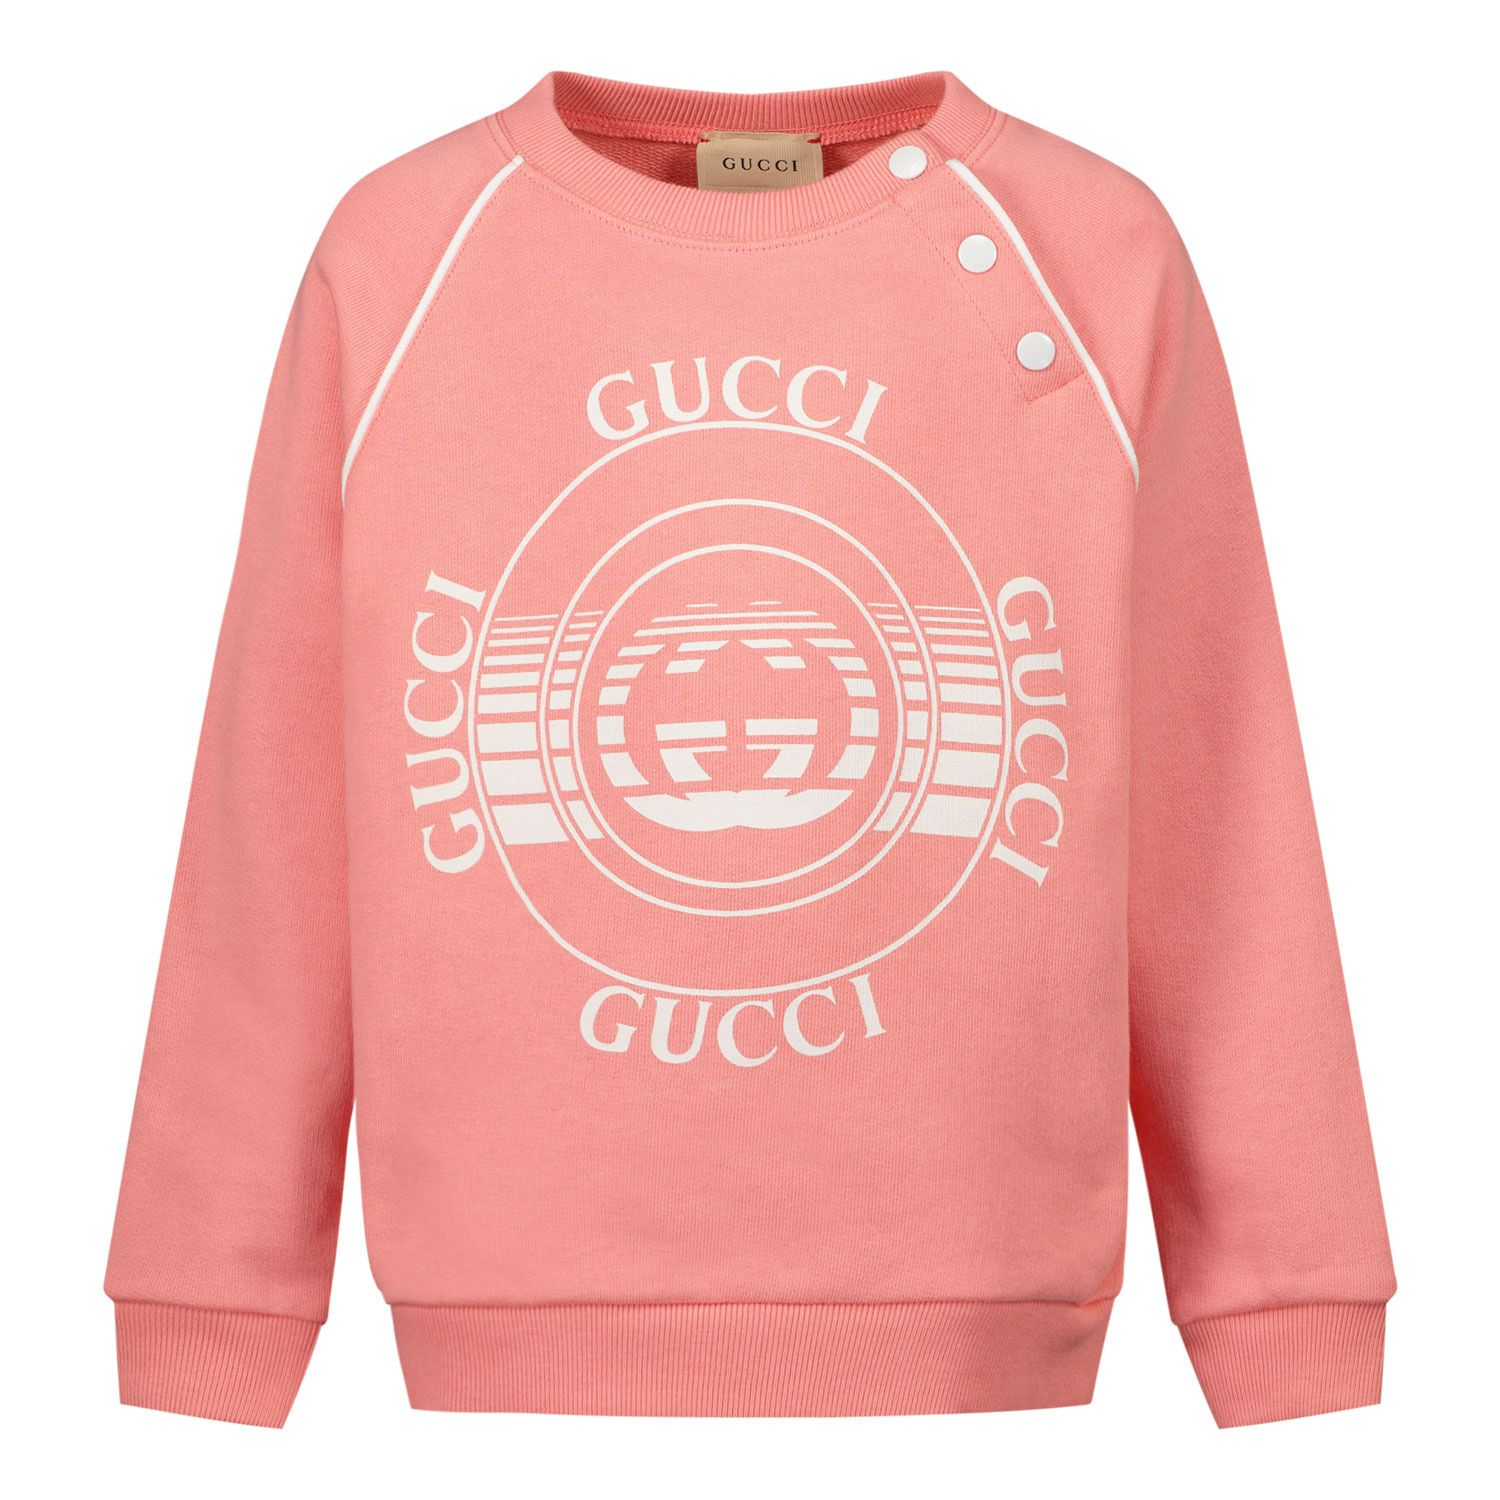 Picture of Gucci 647900 baby sweater salmon